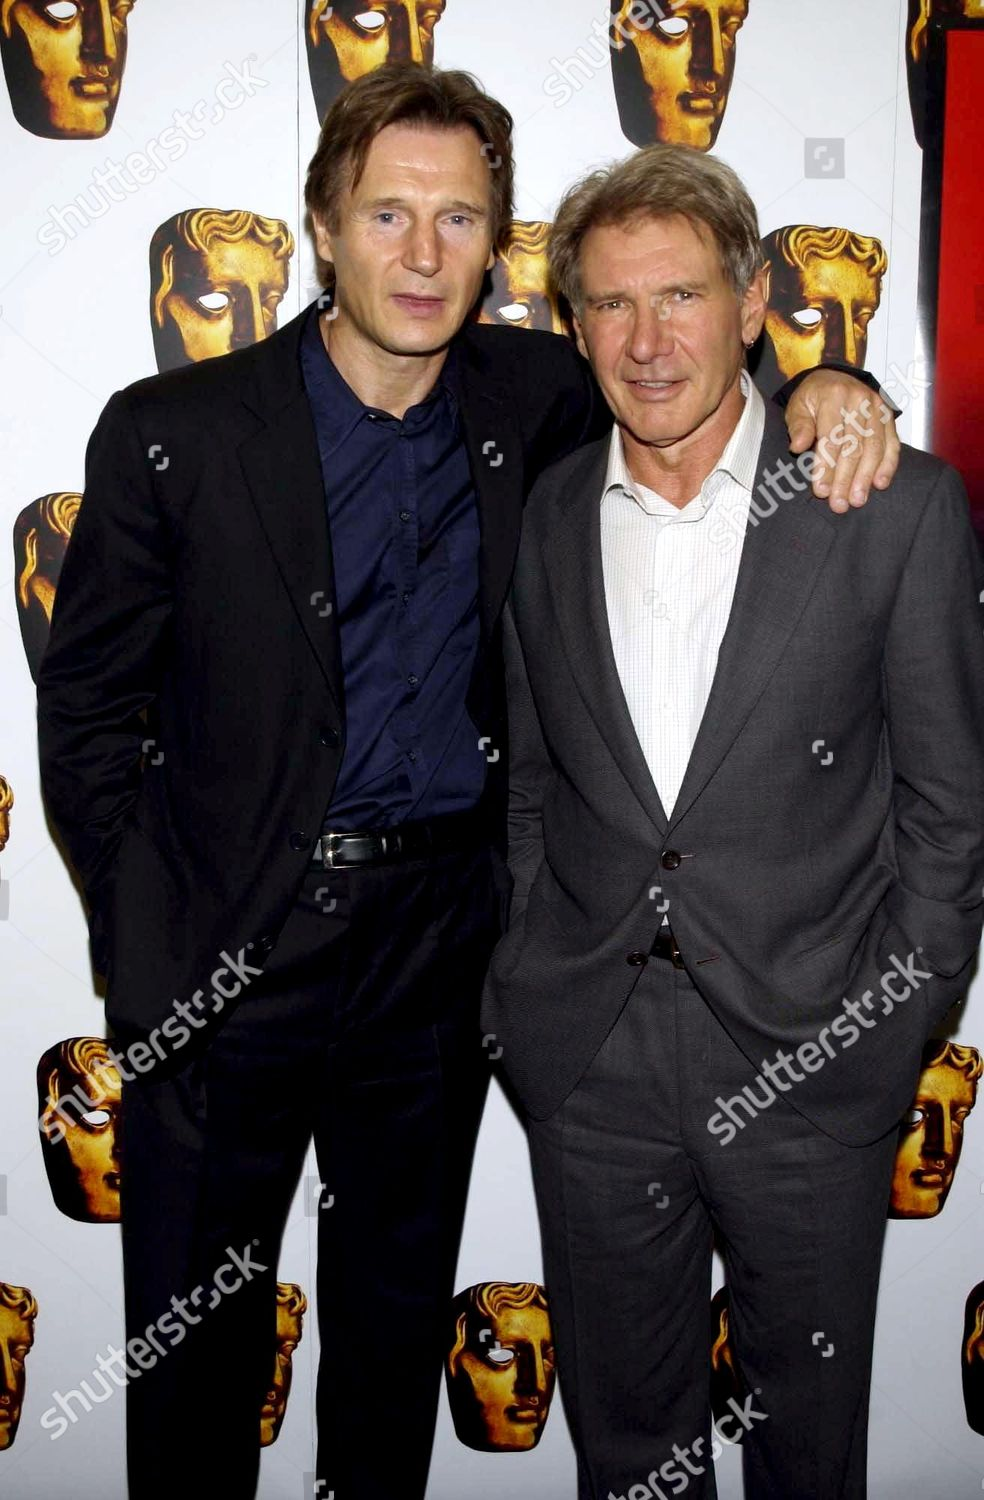 ¿Cuánto mide Harrison Ford? - Altura - Real height K19-the-widowmaker-film-promotion-party-london-britain-shutterstock-editorial-389315f